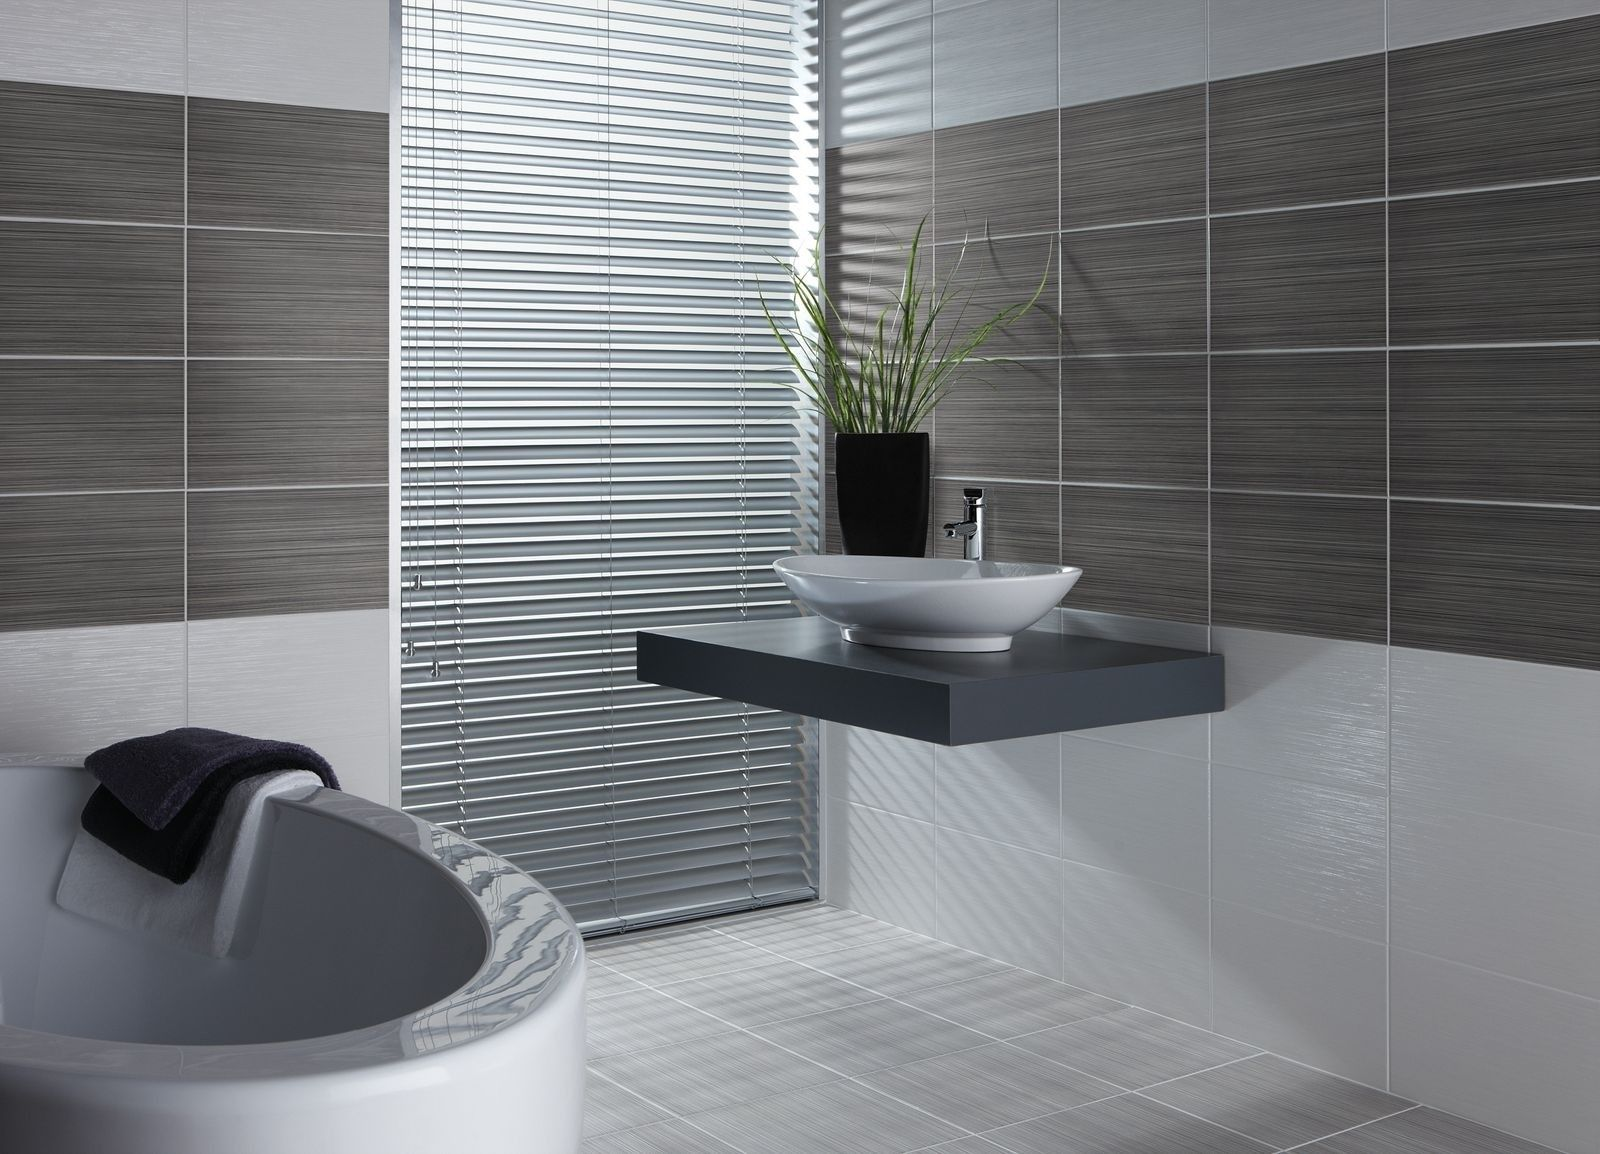 striped grey tile and bathroom grout update business review business. beautiful ideas. Home Design Ideas